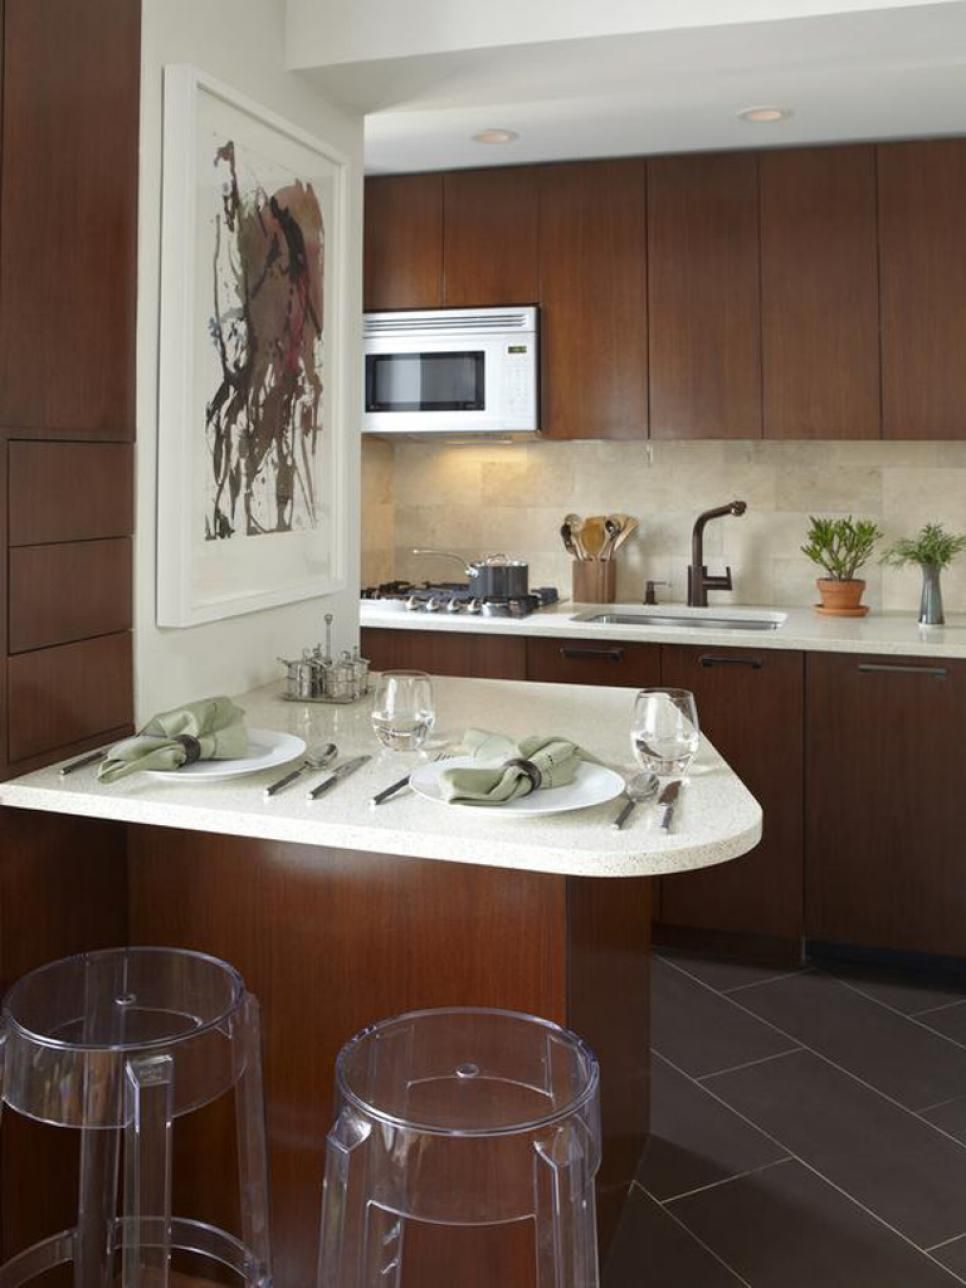 Small kitchen remodeling ideas pictures latulufofeed